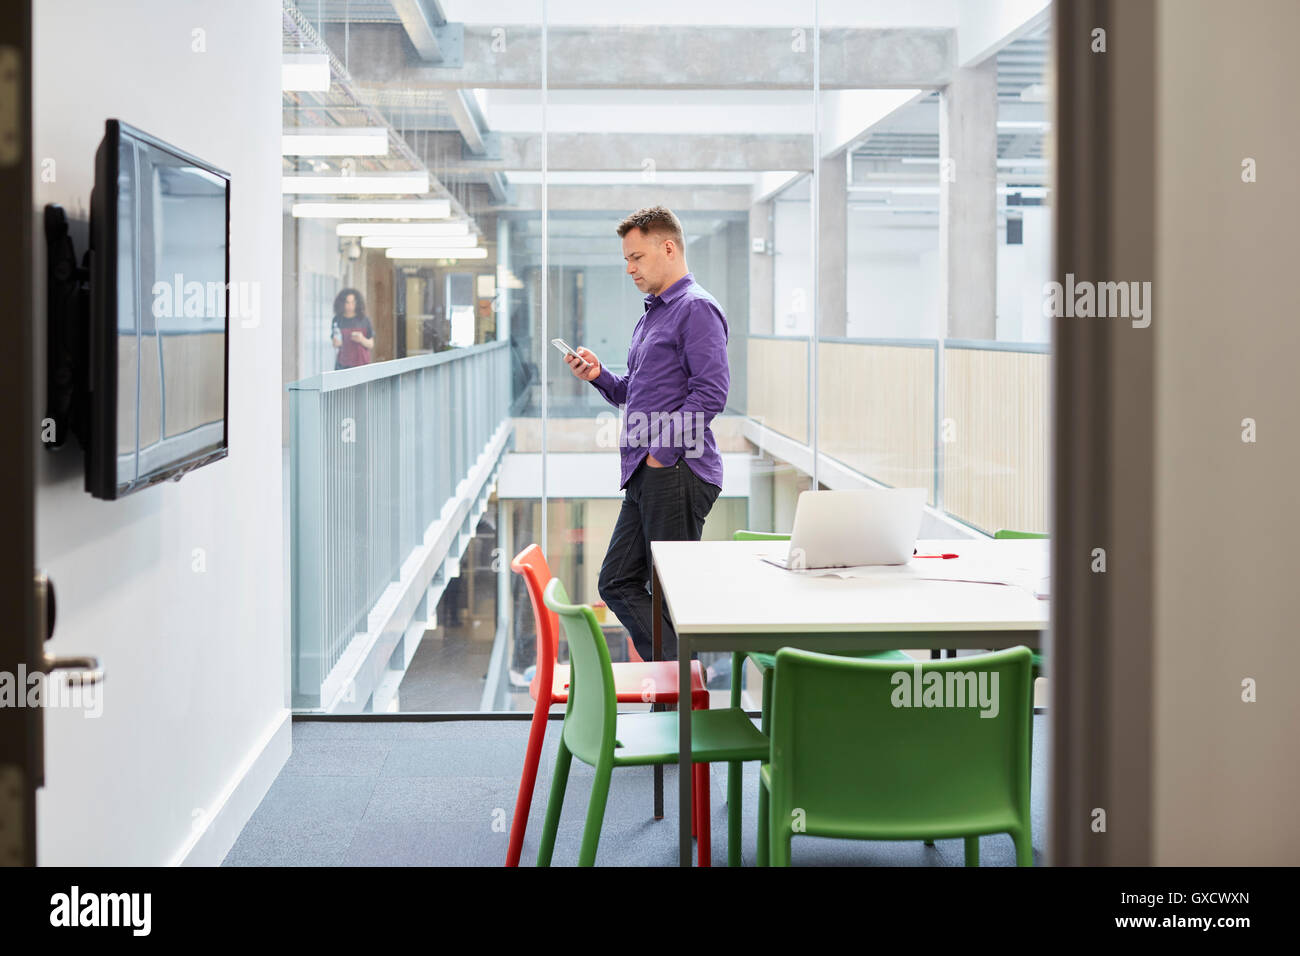 Male designer reading smartphone update in design studio - Stock Image